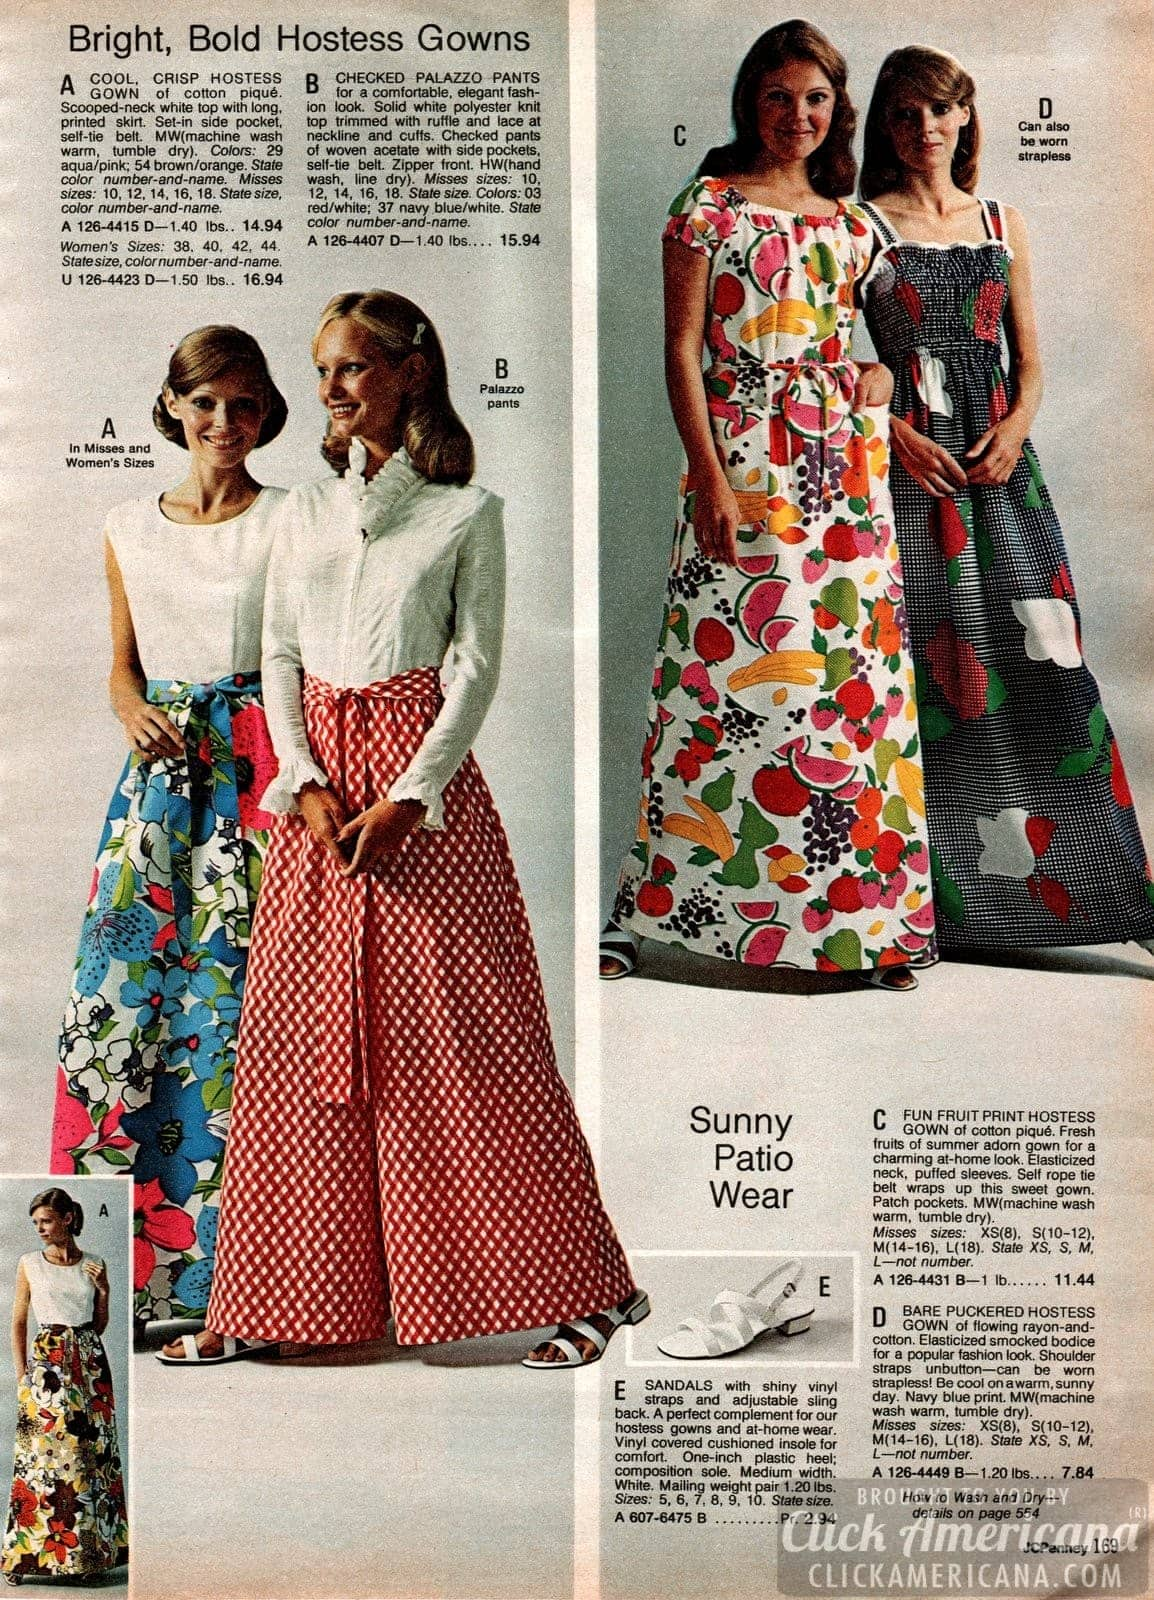 Vintage hostess gowns - Clothes from the 70s